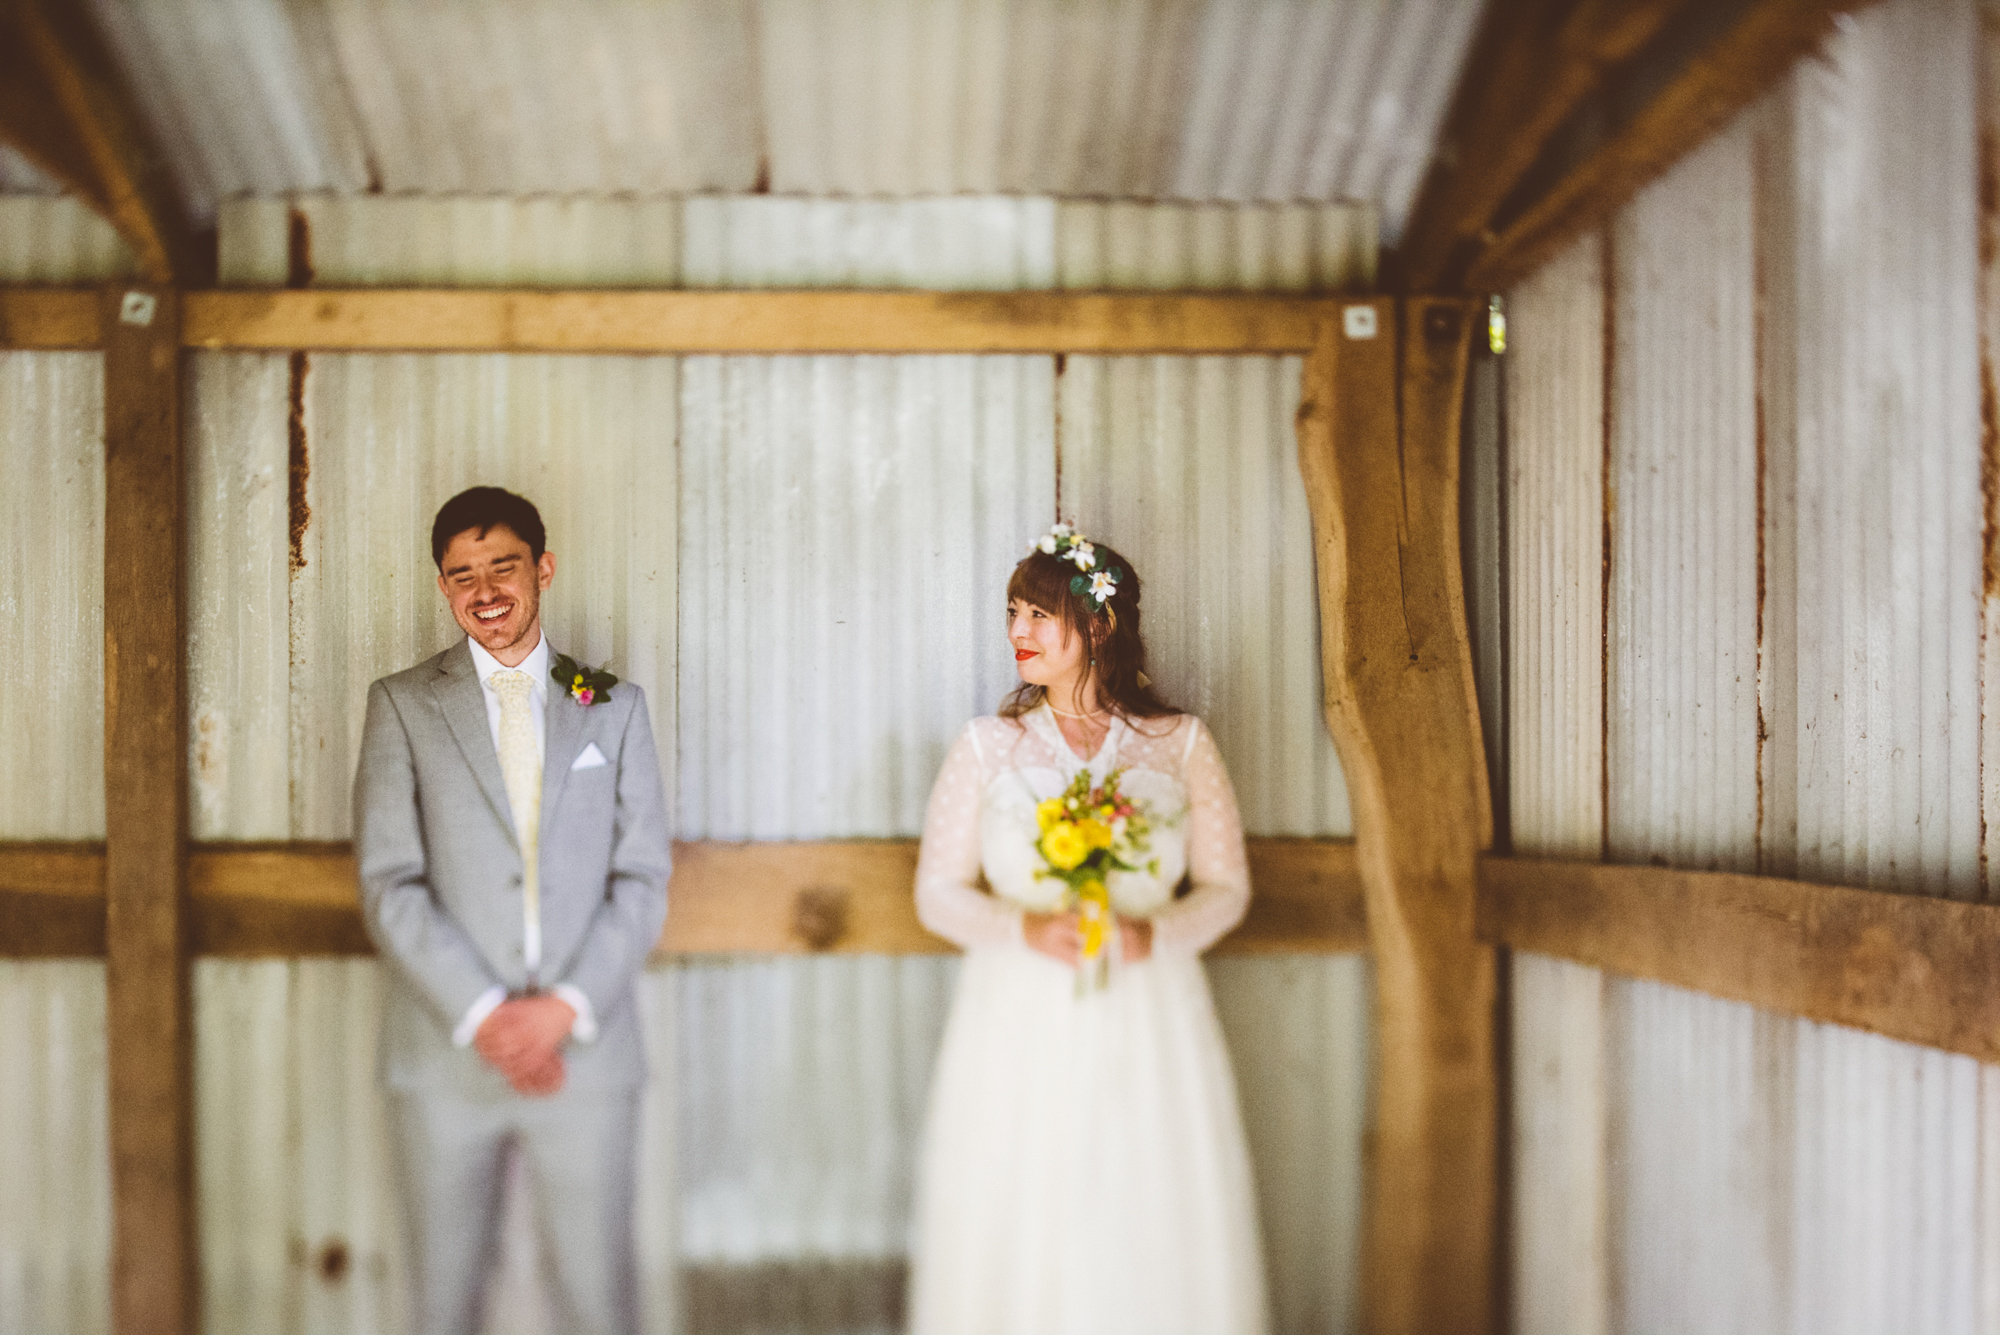 Outdoor wedding photography in Gloucestershire - Hannah and Steve